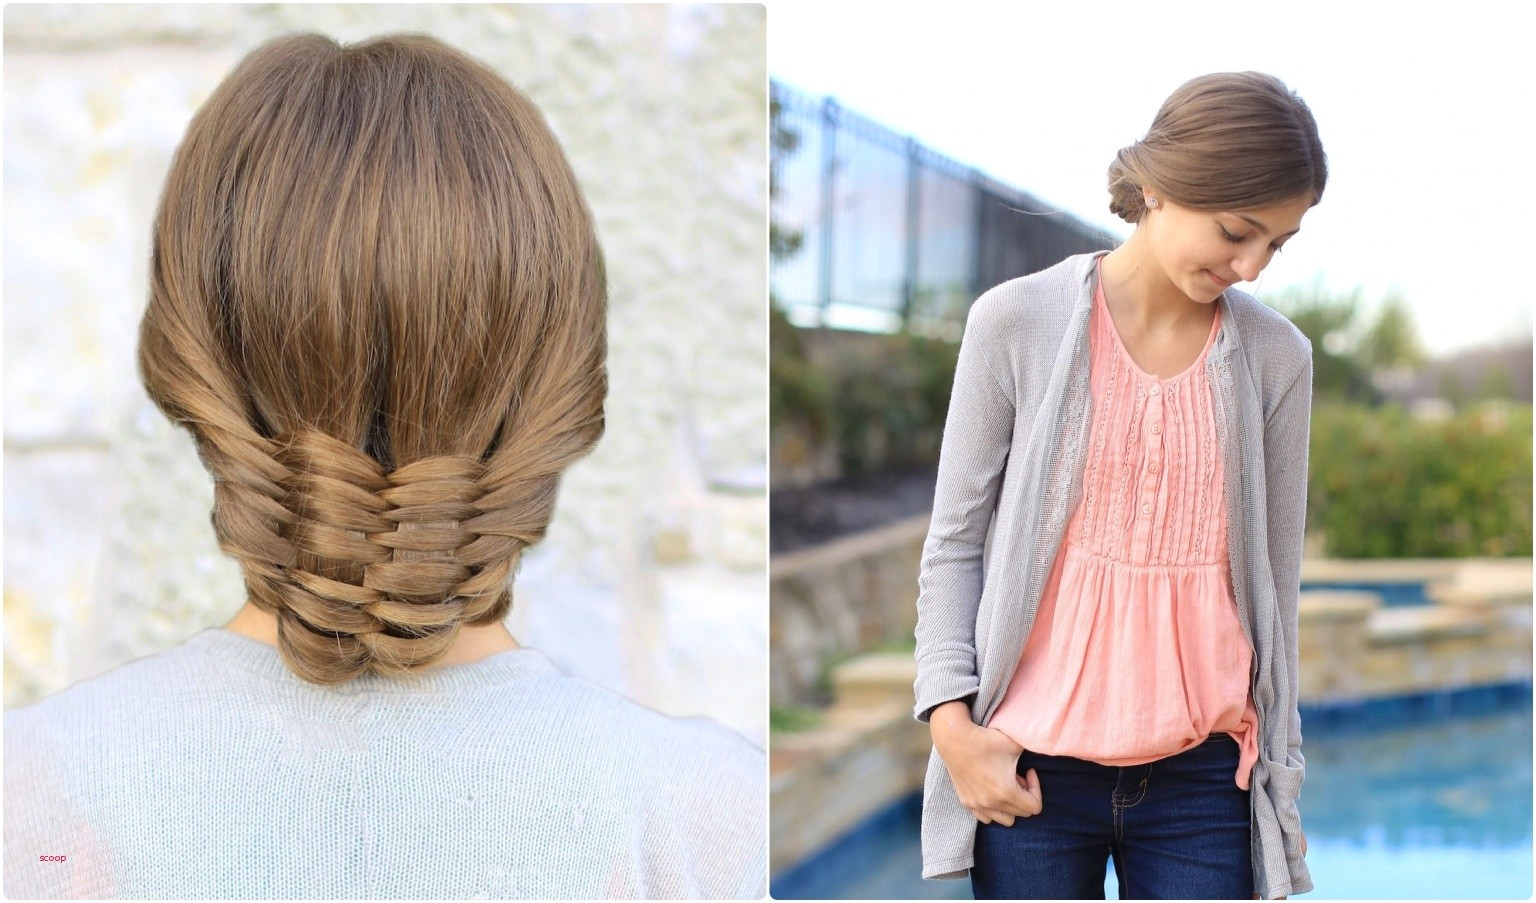 The Woven Updo from mindy cute girl hairstyles source youtube 0d acc3ed b09ec9c8cb996e